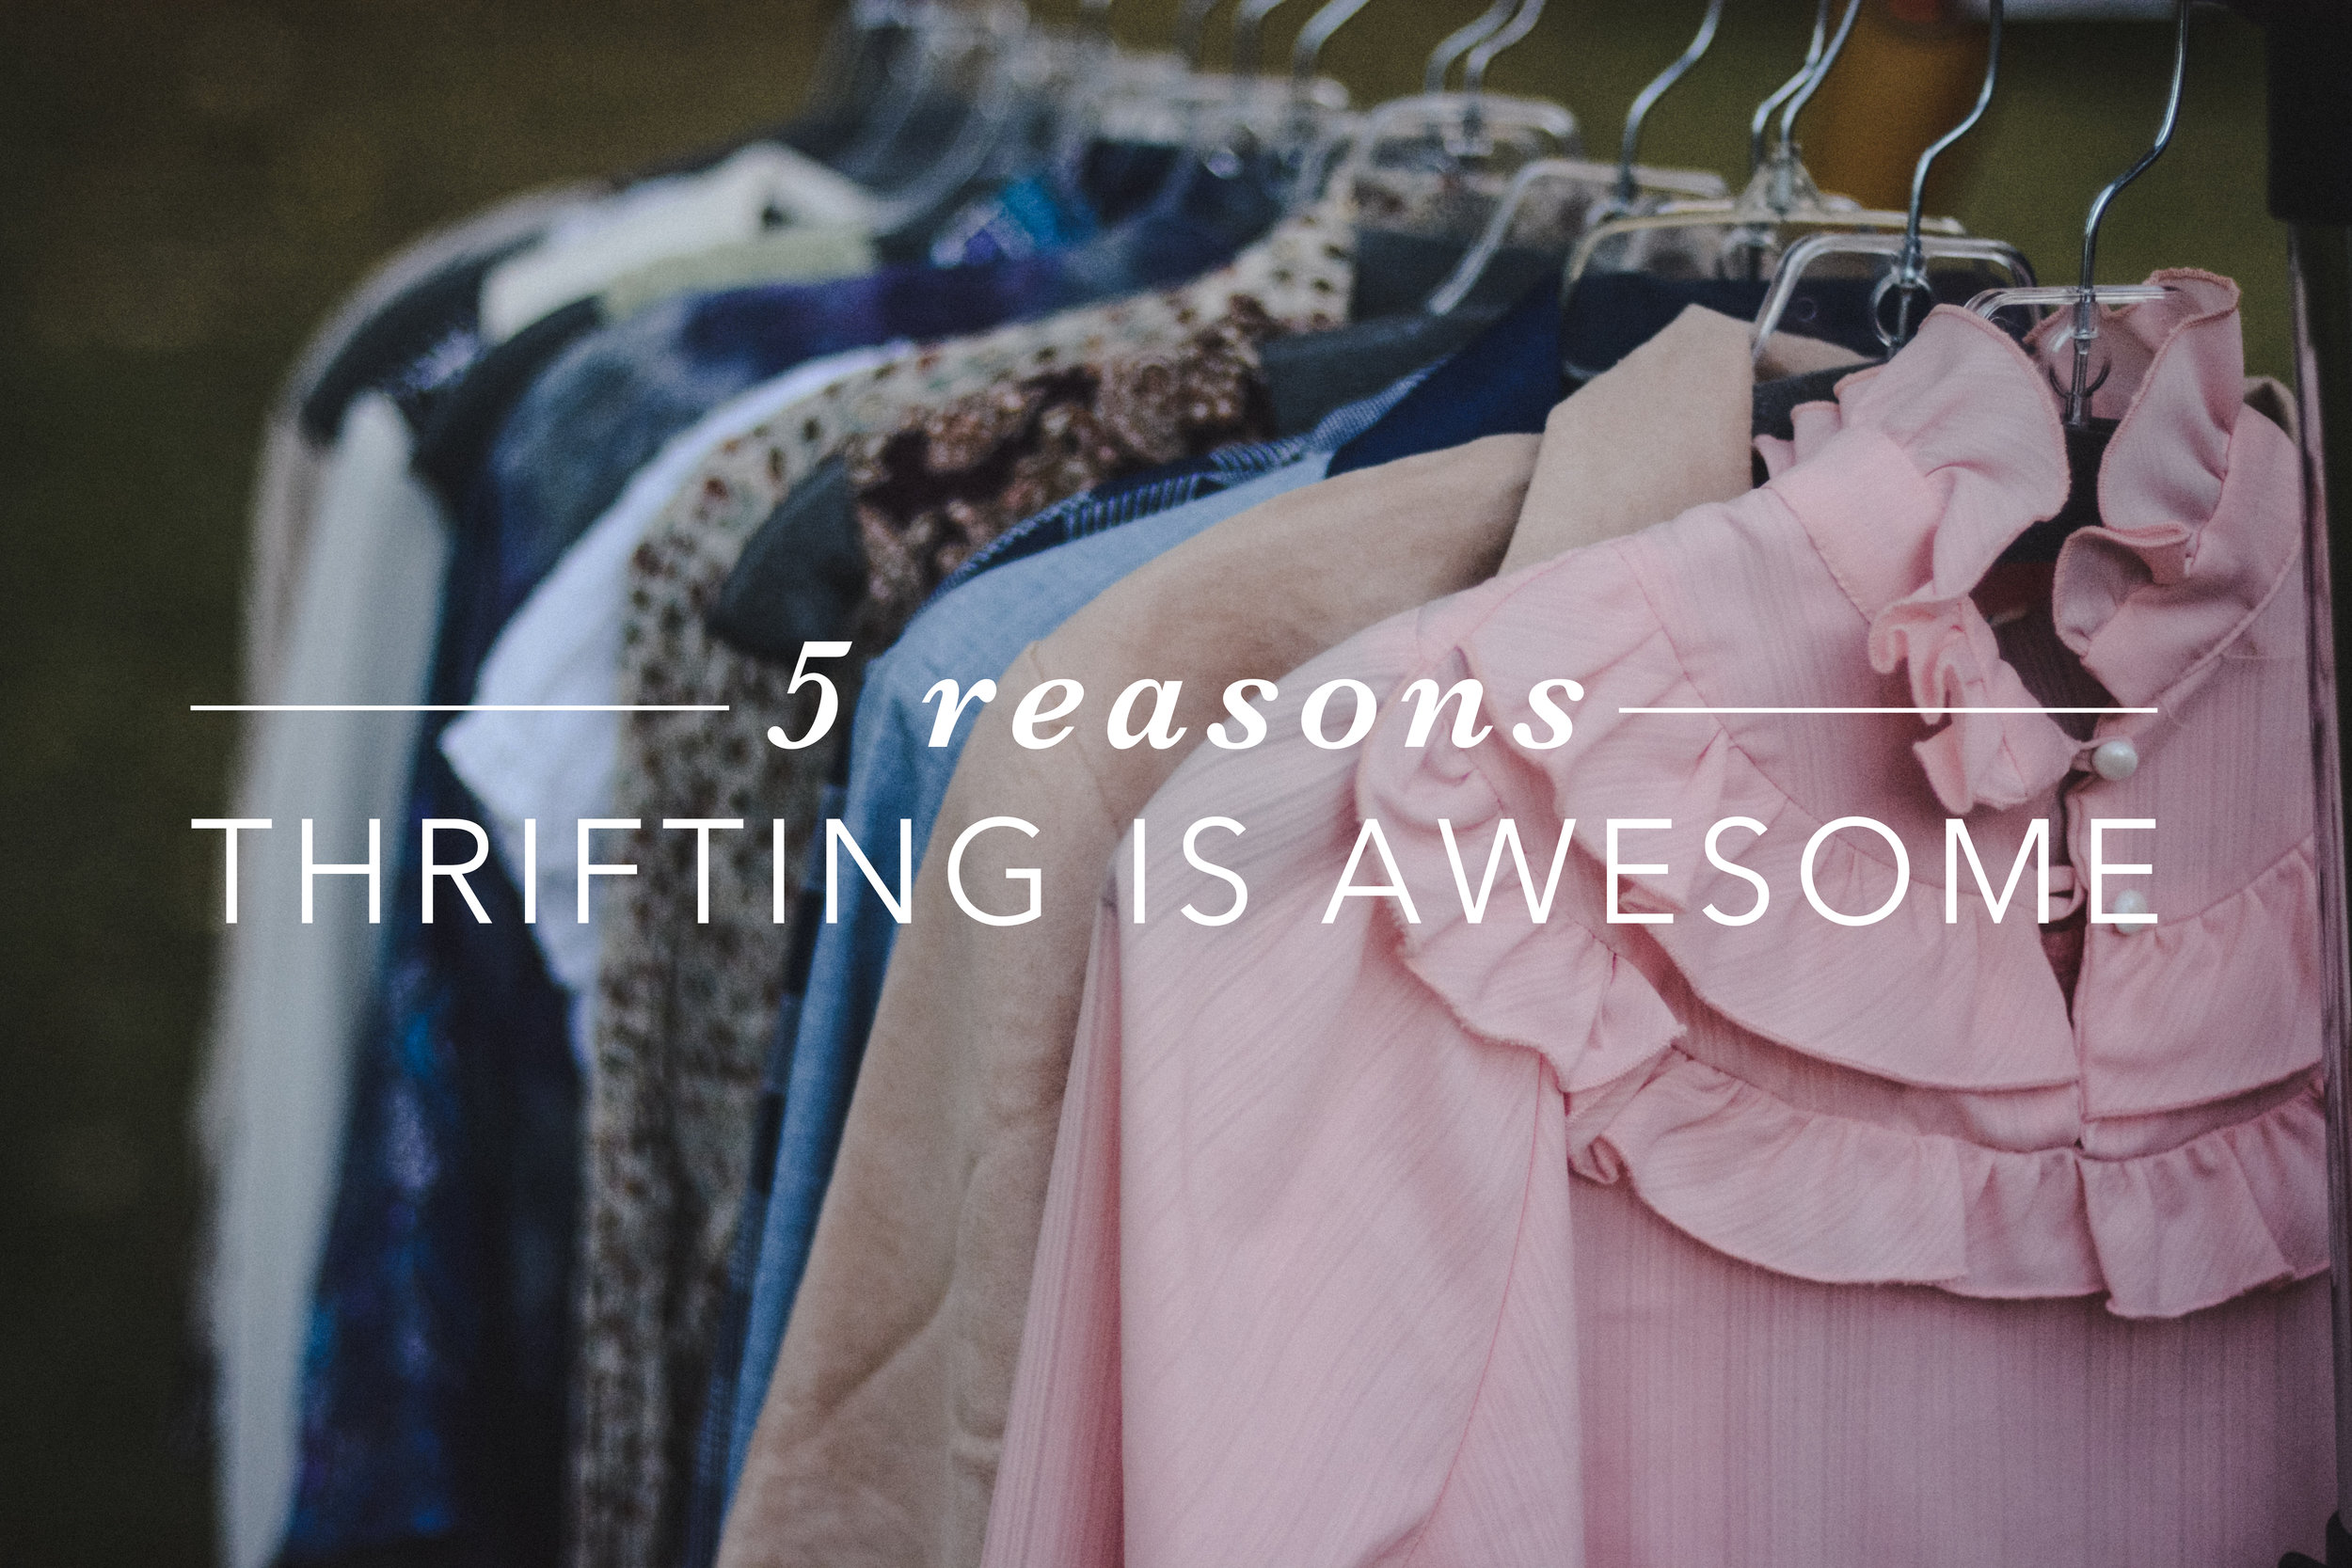 5 Reasons Thrifting is Awesome